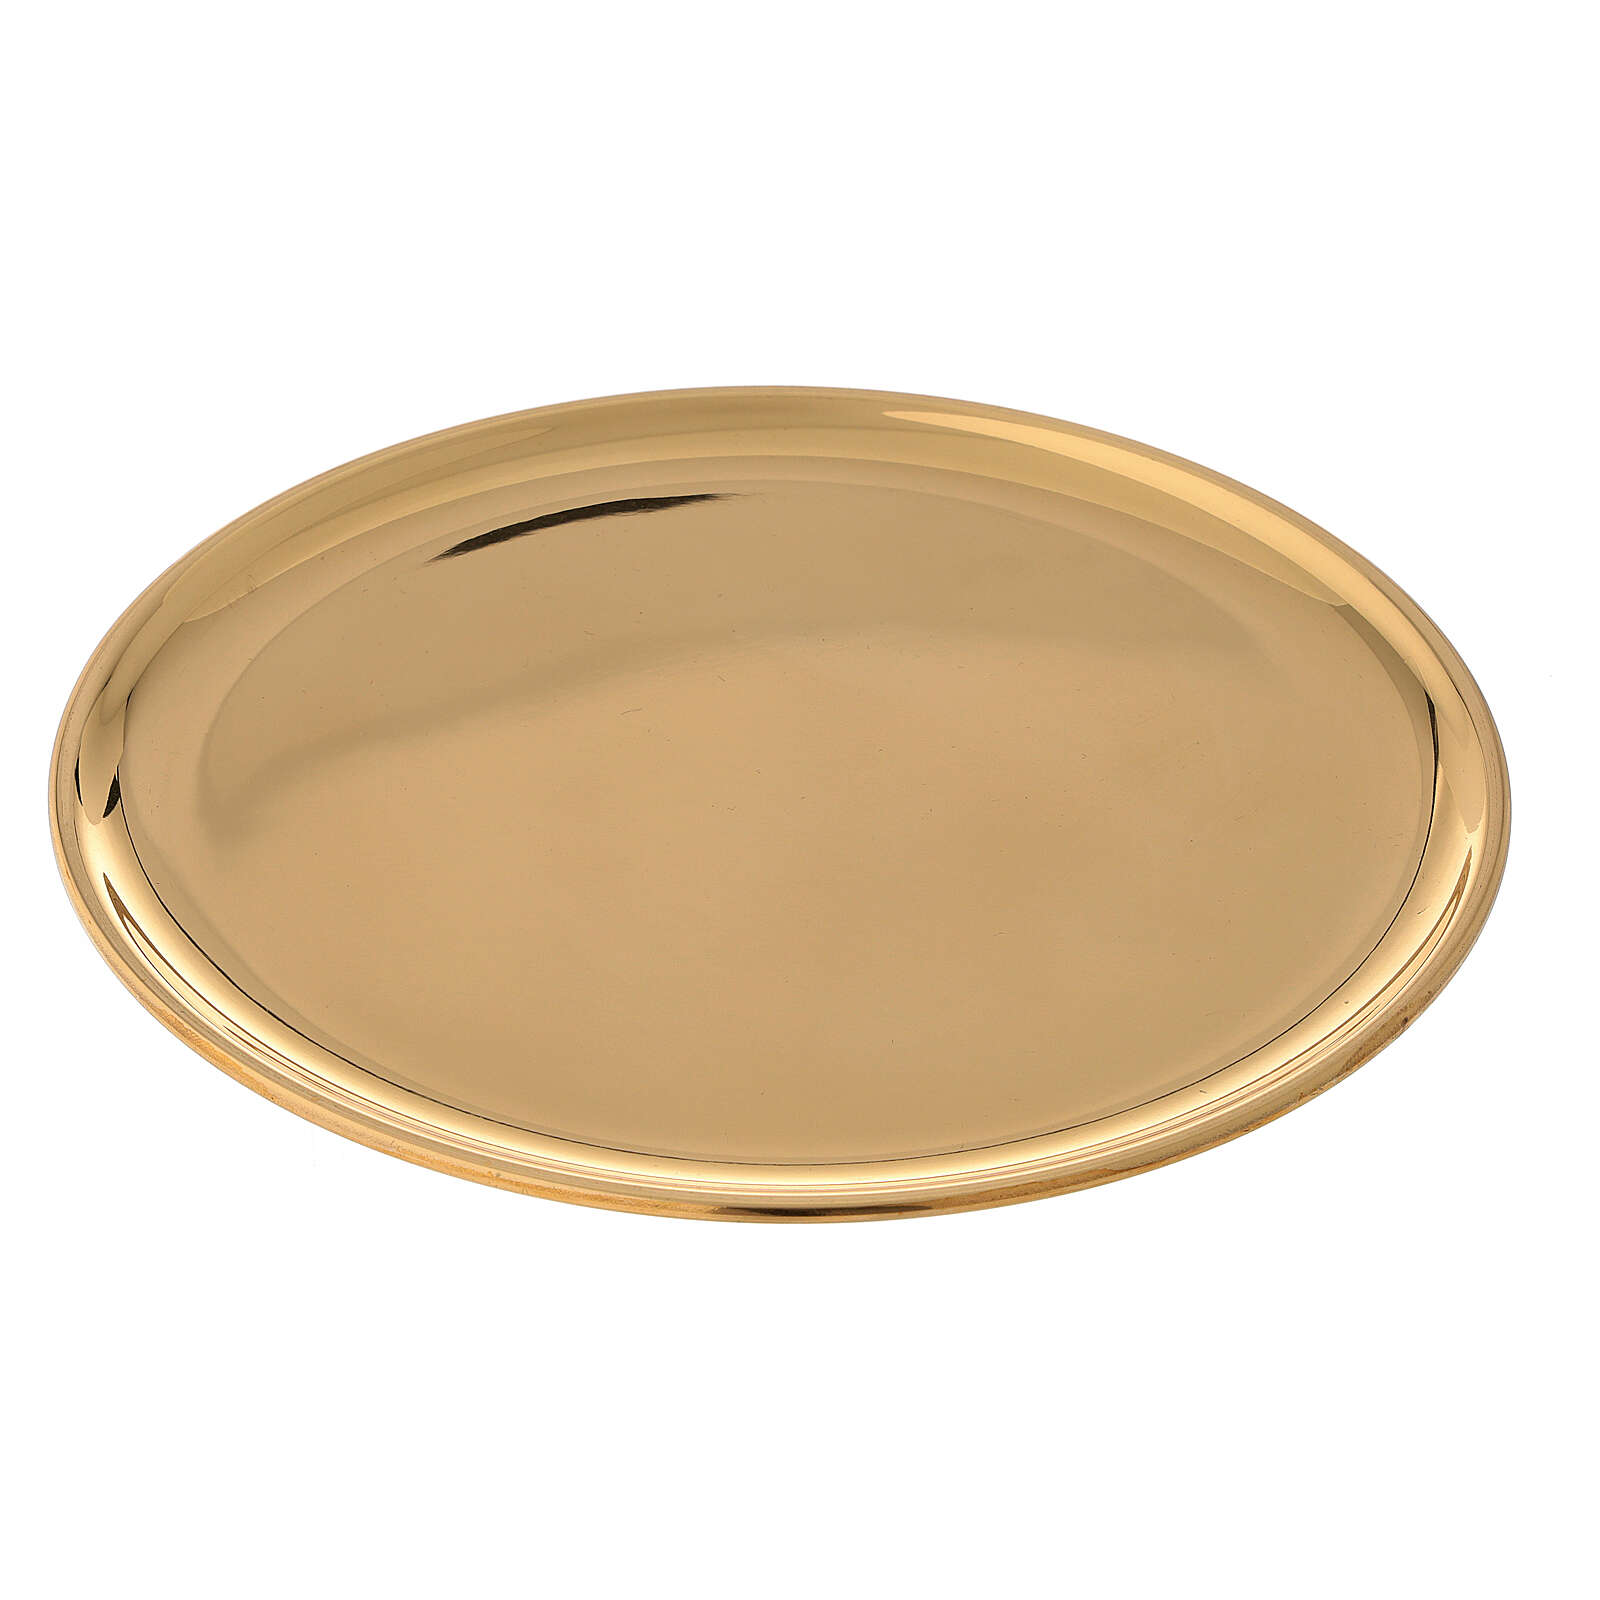 Candle holder plate d. 7 1/2 in polished gold plated brass 3